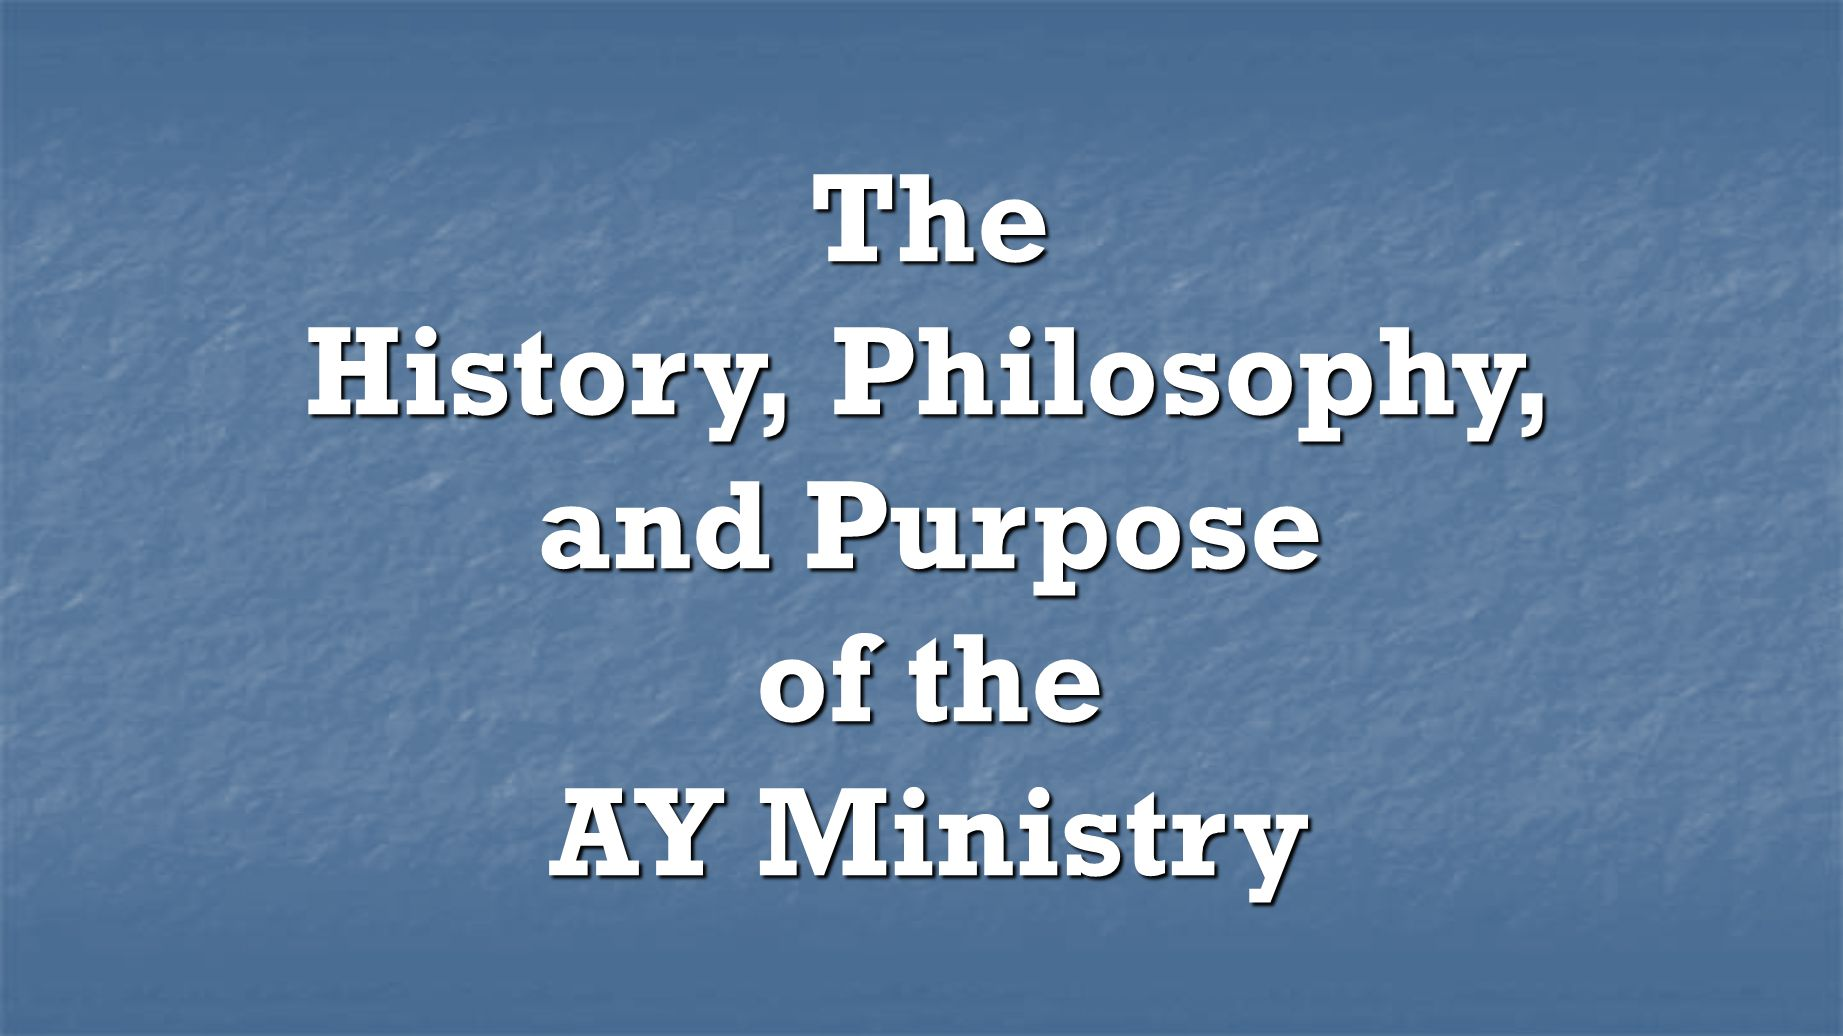 The History, Philosophy, and Purpose of the AY Ministry